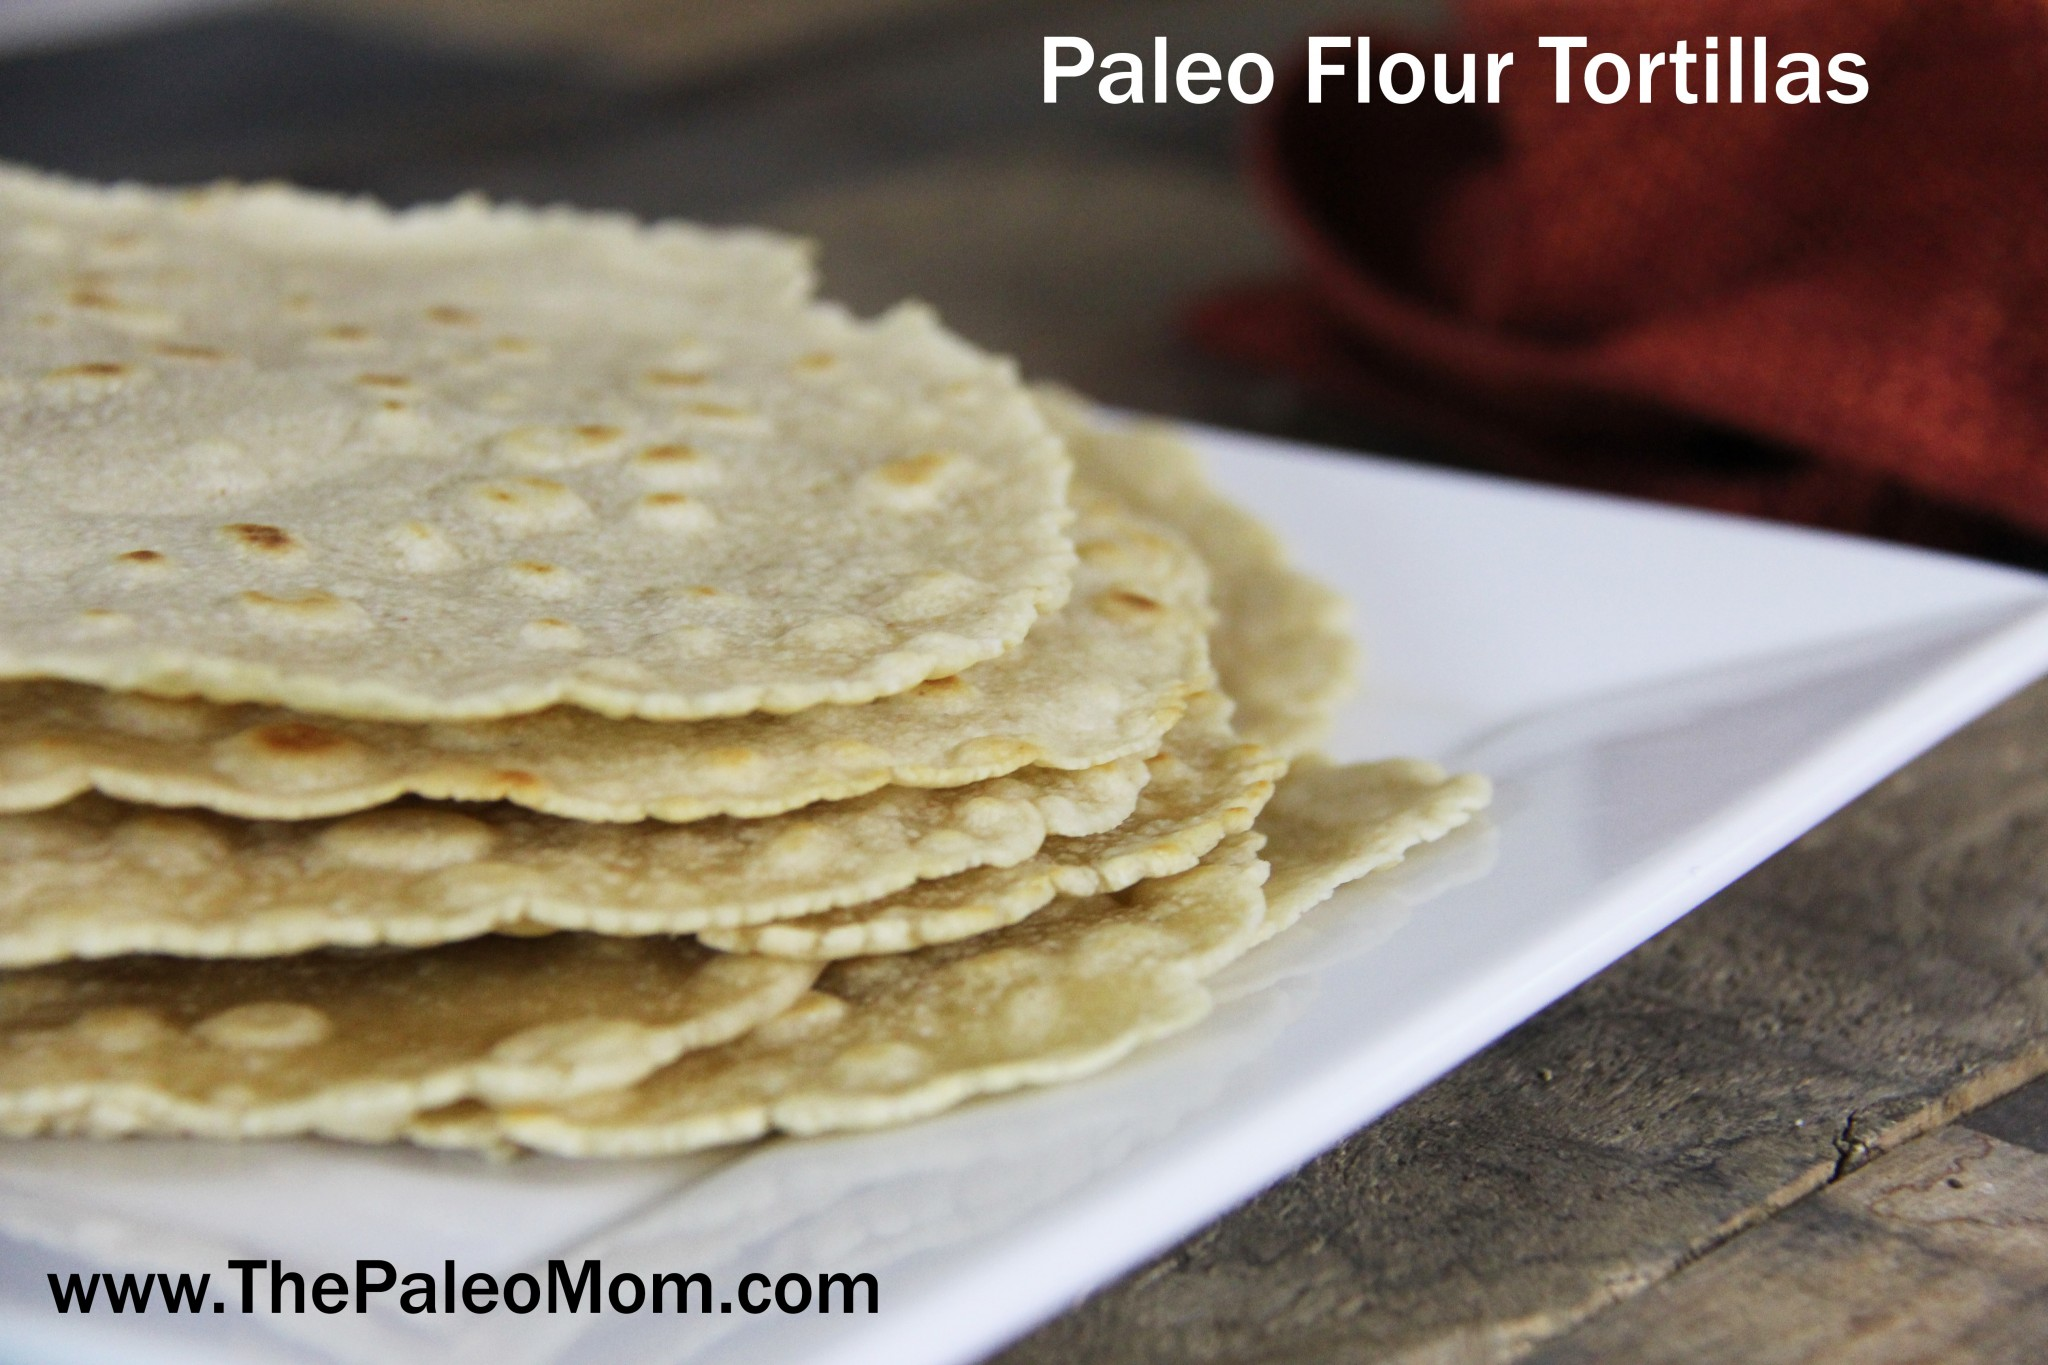 Paleo Flour Tortillas from The Paleo Mom